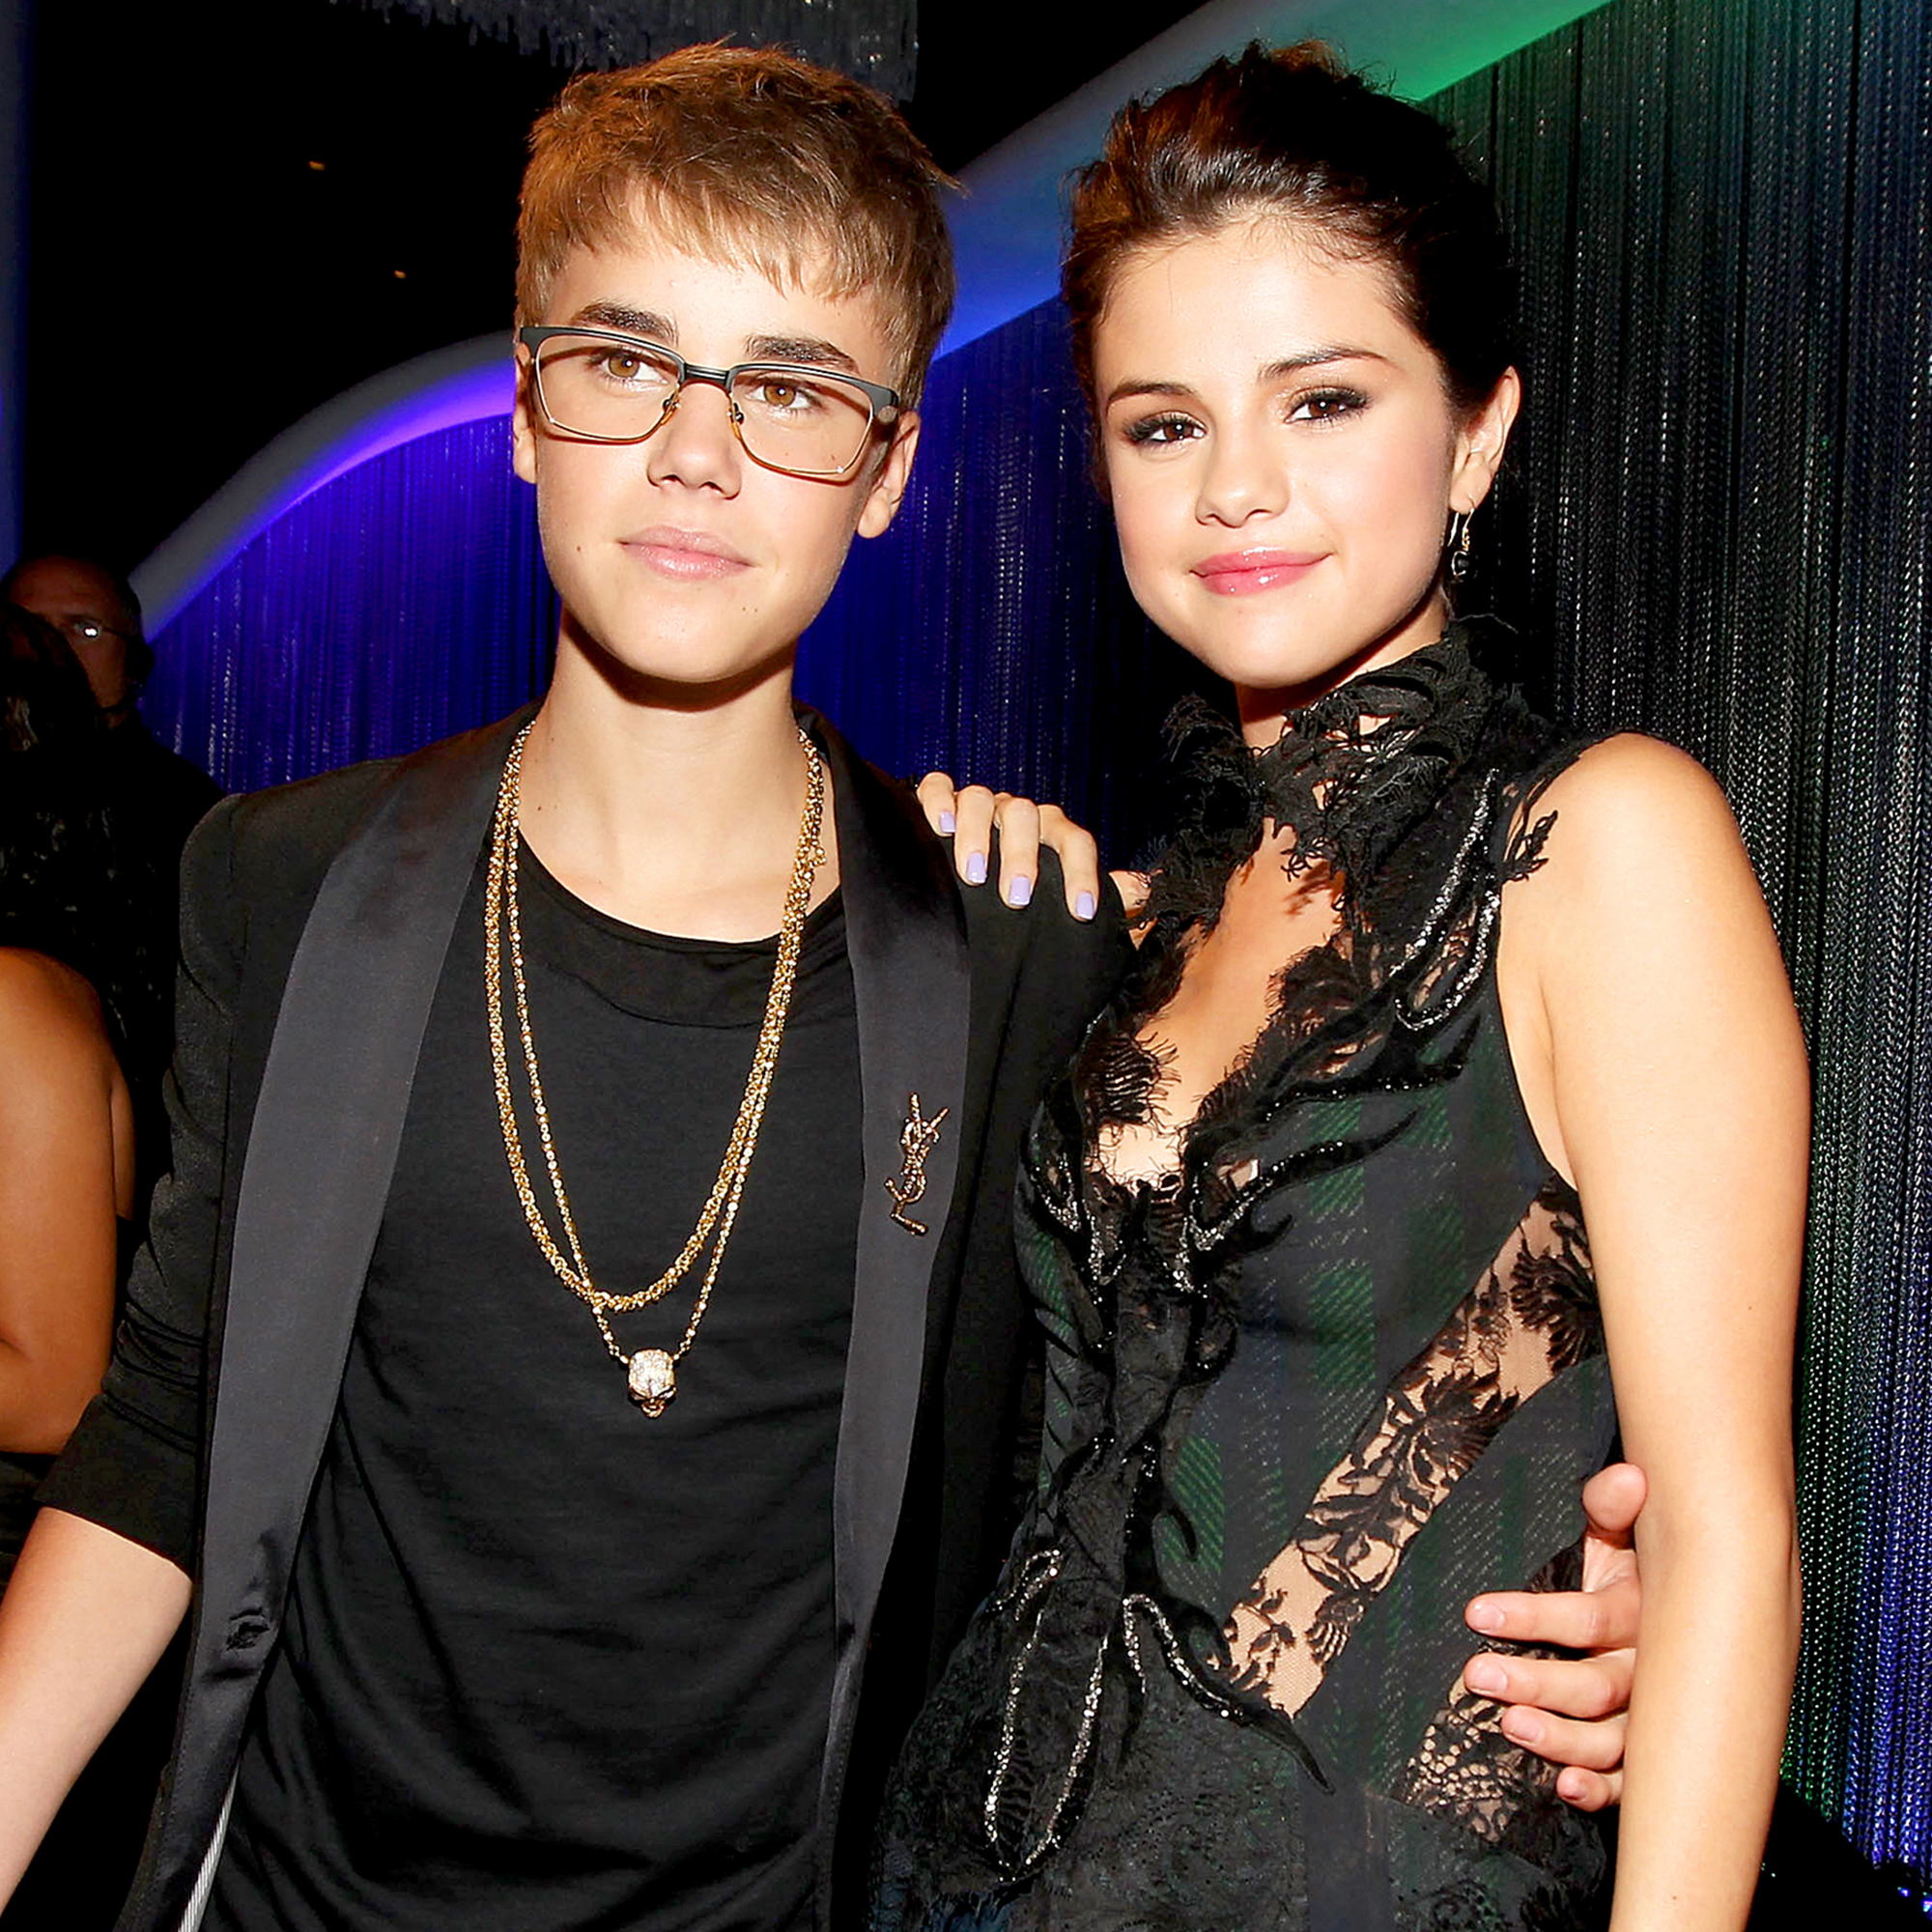 Selena Gomez's Mom Is Not Happy About Justin Bieber